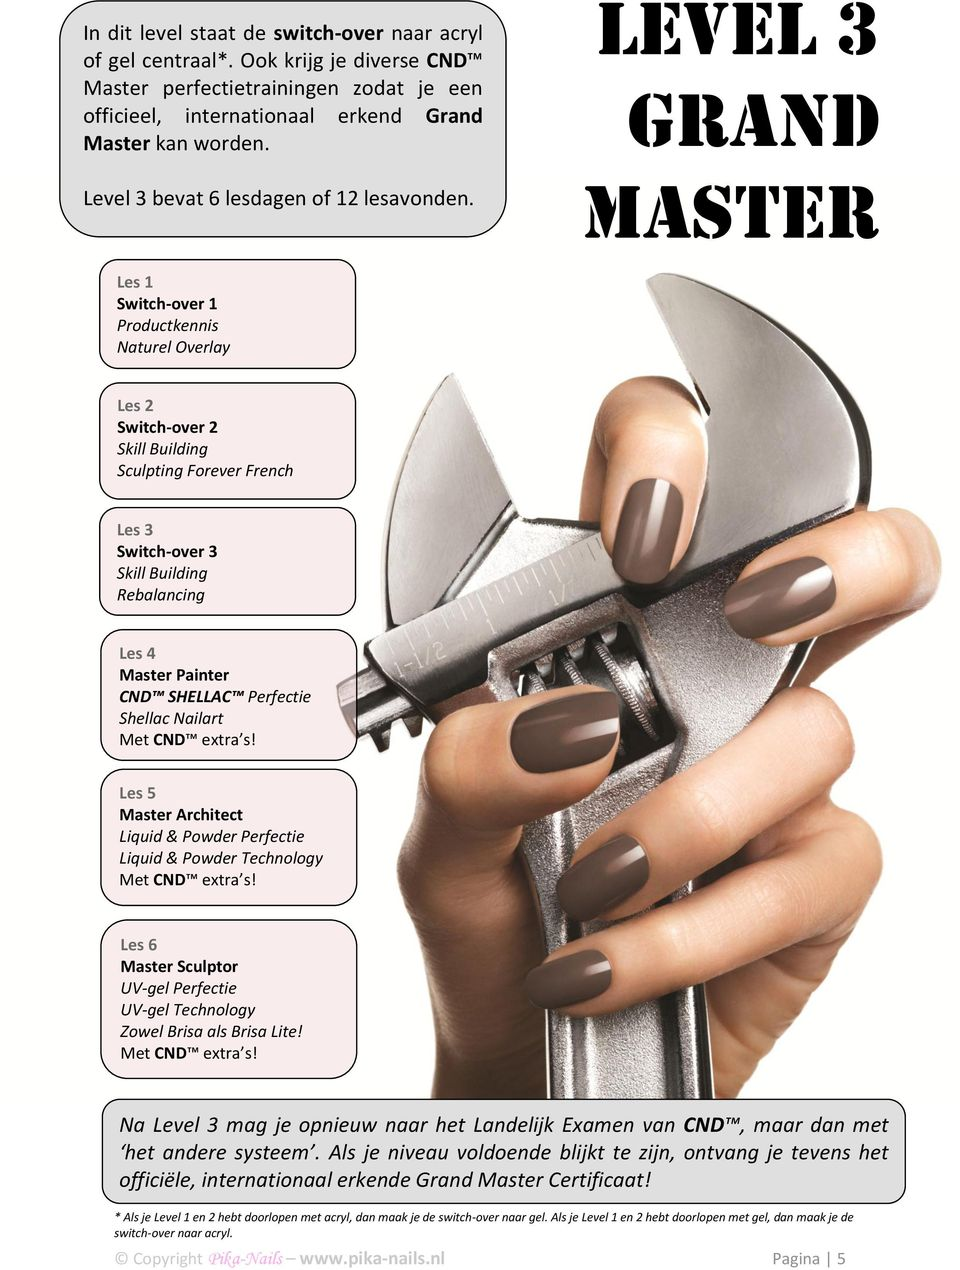 Level 3 Grand Master Les 1 Switch-over 1 Productkennis Naturel Overlay Les 2 Switch-over 2 Skill Building Sculpting Forever French Les 3 Switch-over 3 Skill Building Rebalancing Les 4 Master Painter